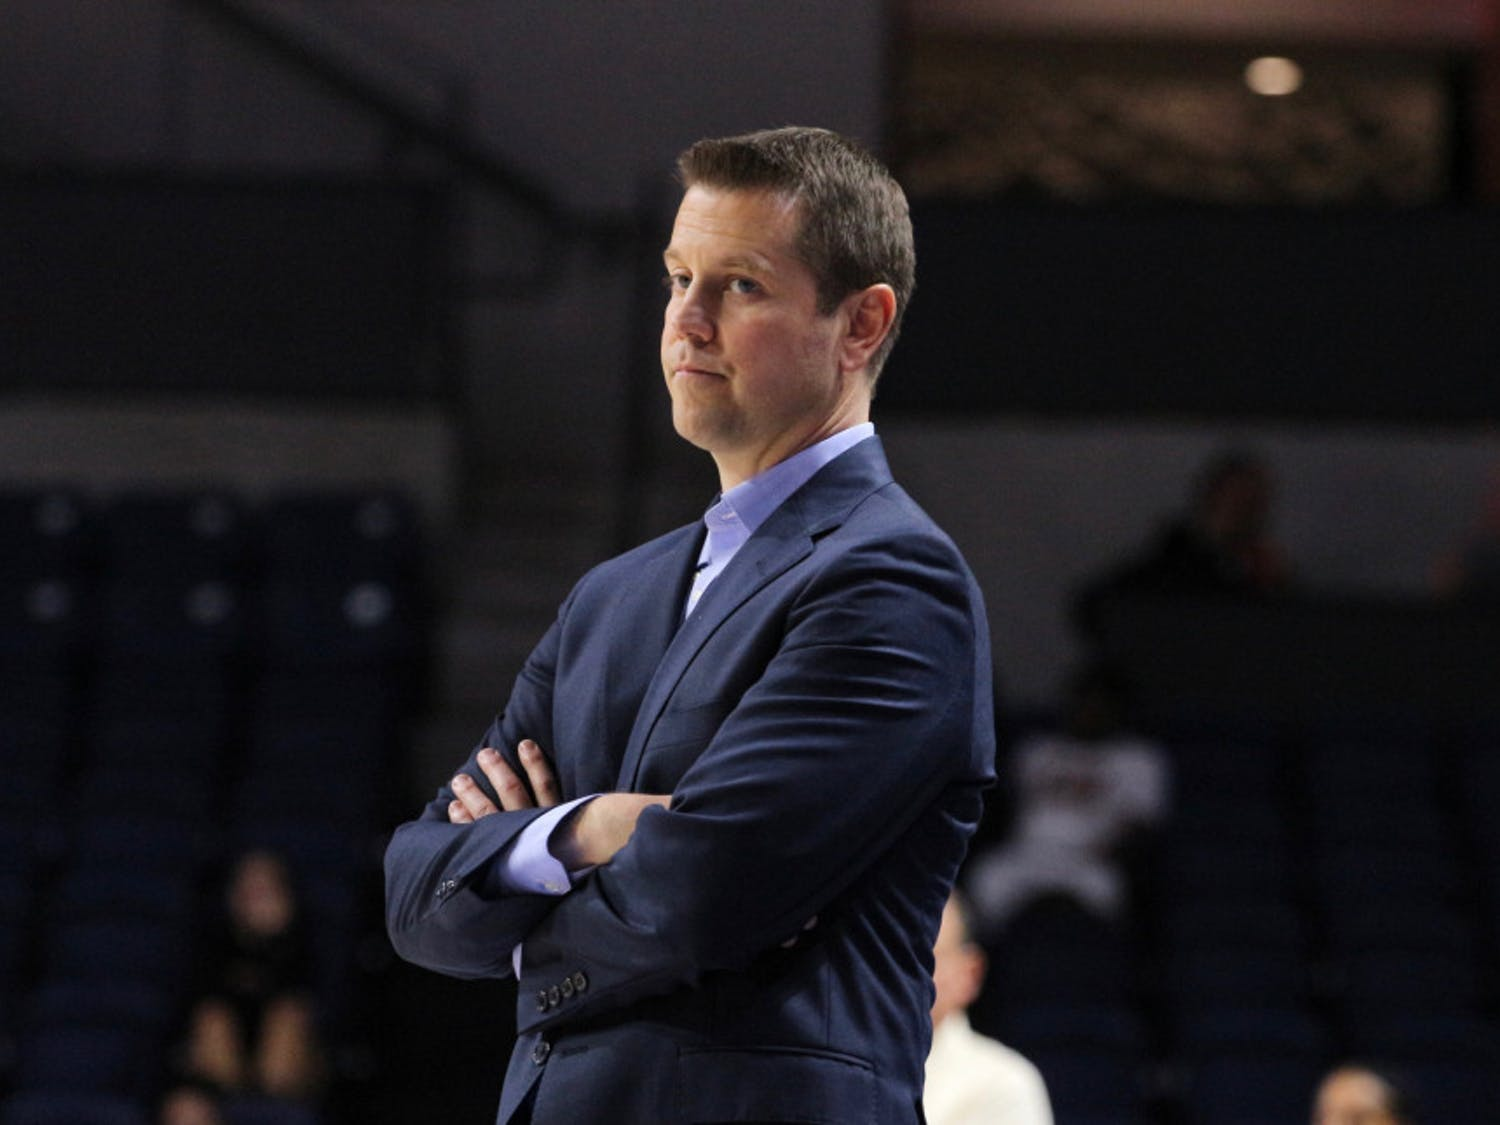 Coach Cameron Newbauer completed his first season with an 11-19 record.